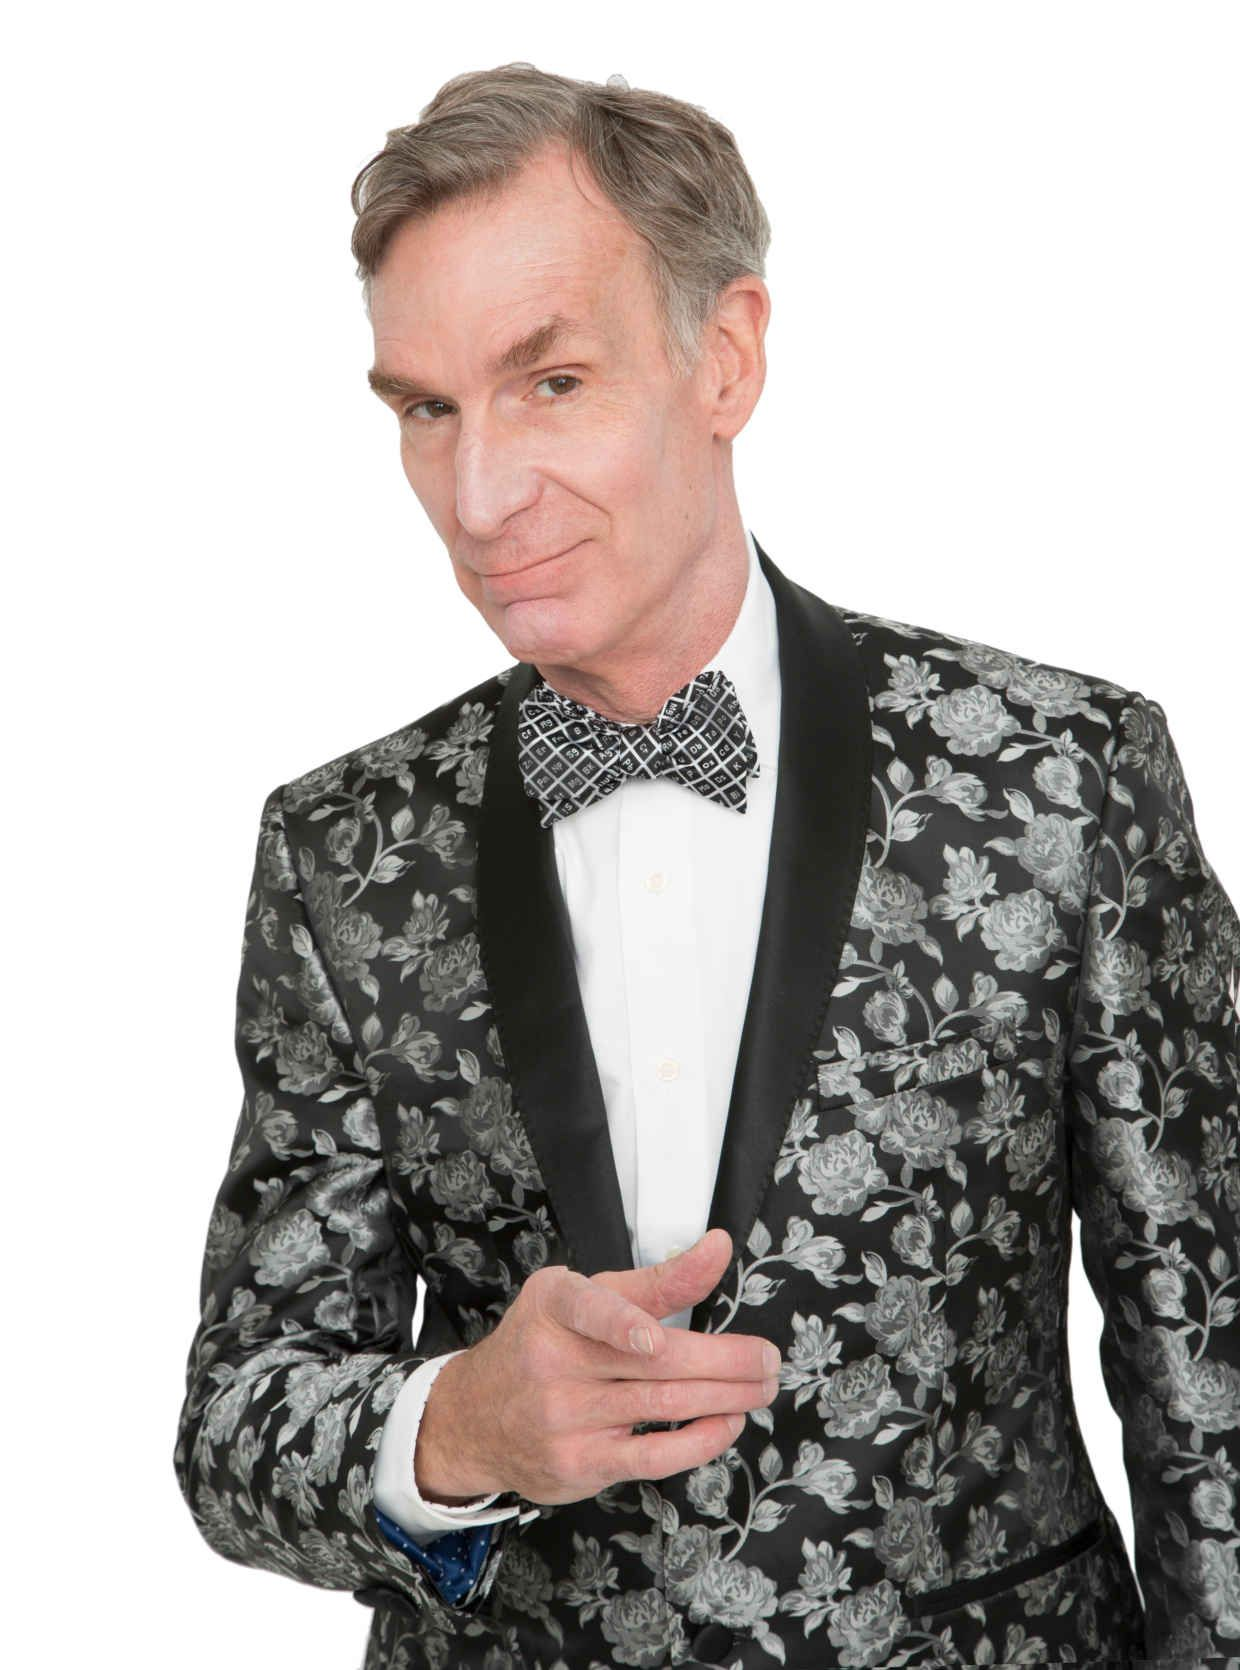 Everything You Ever Wanted to Know About Bill Nye's Beauty